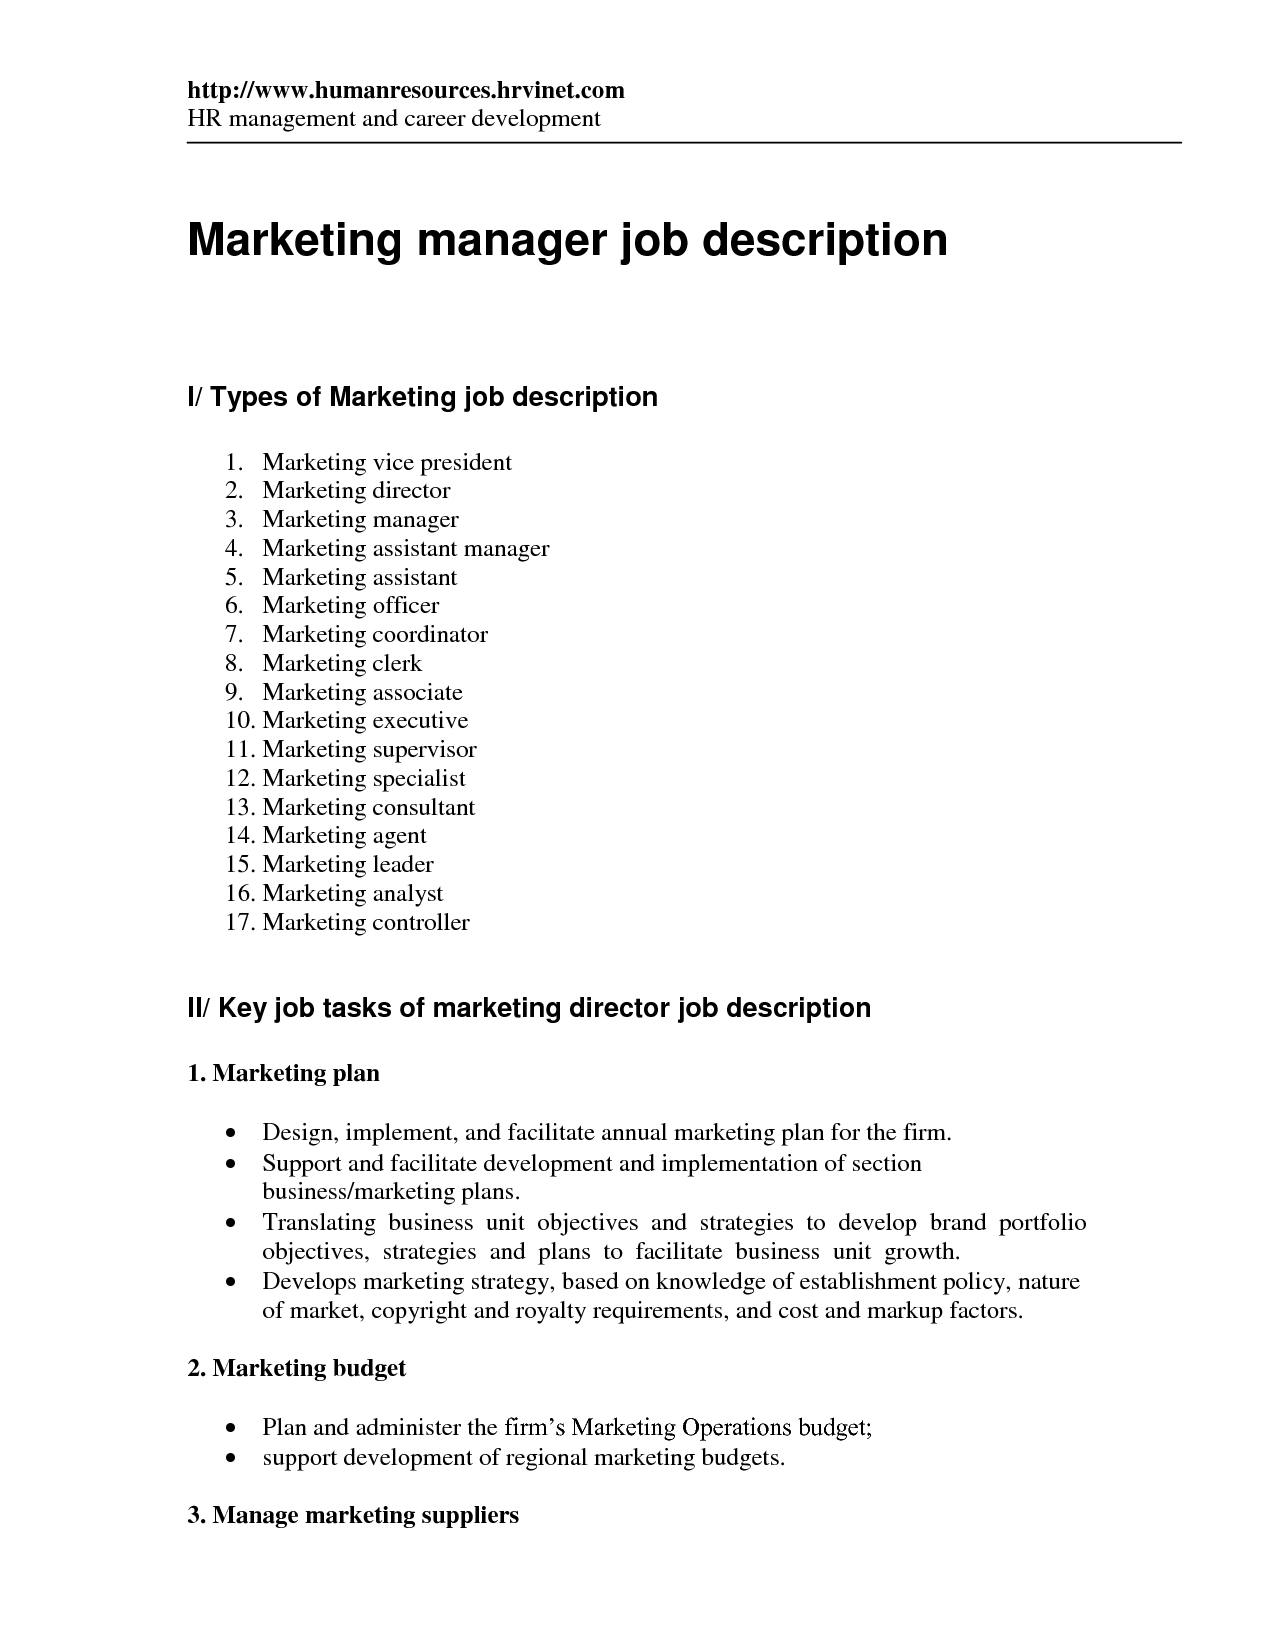 training officer job description template - assistant marketing manager job description marketing